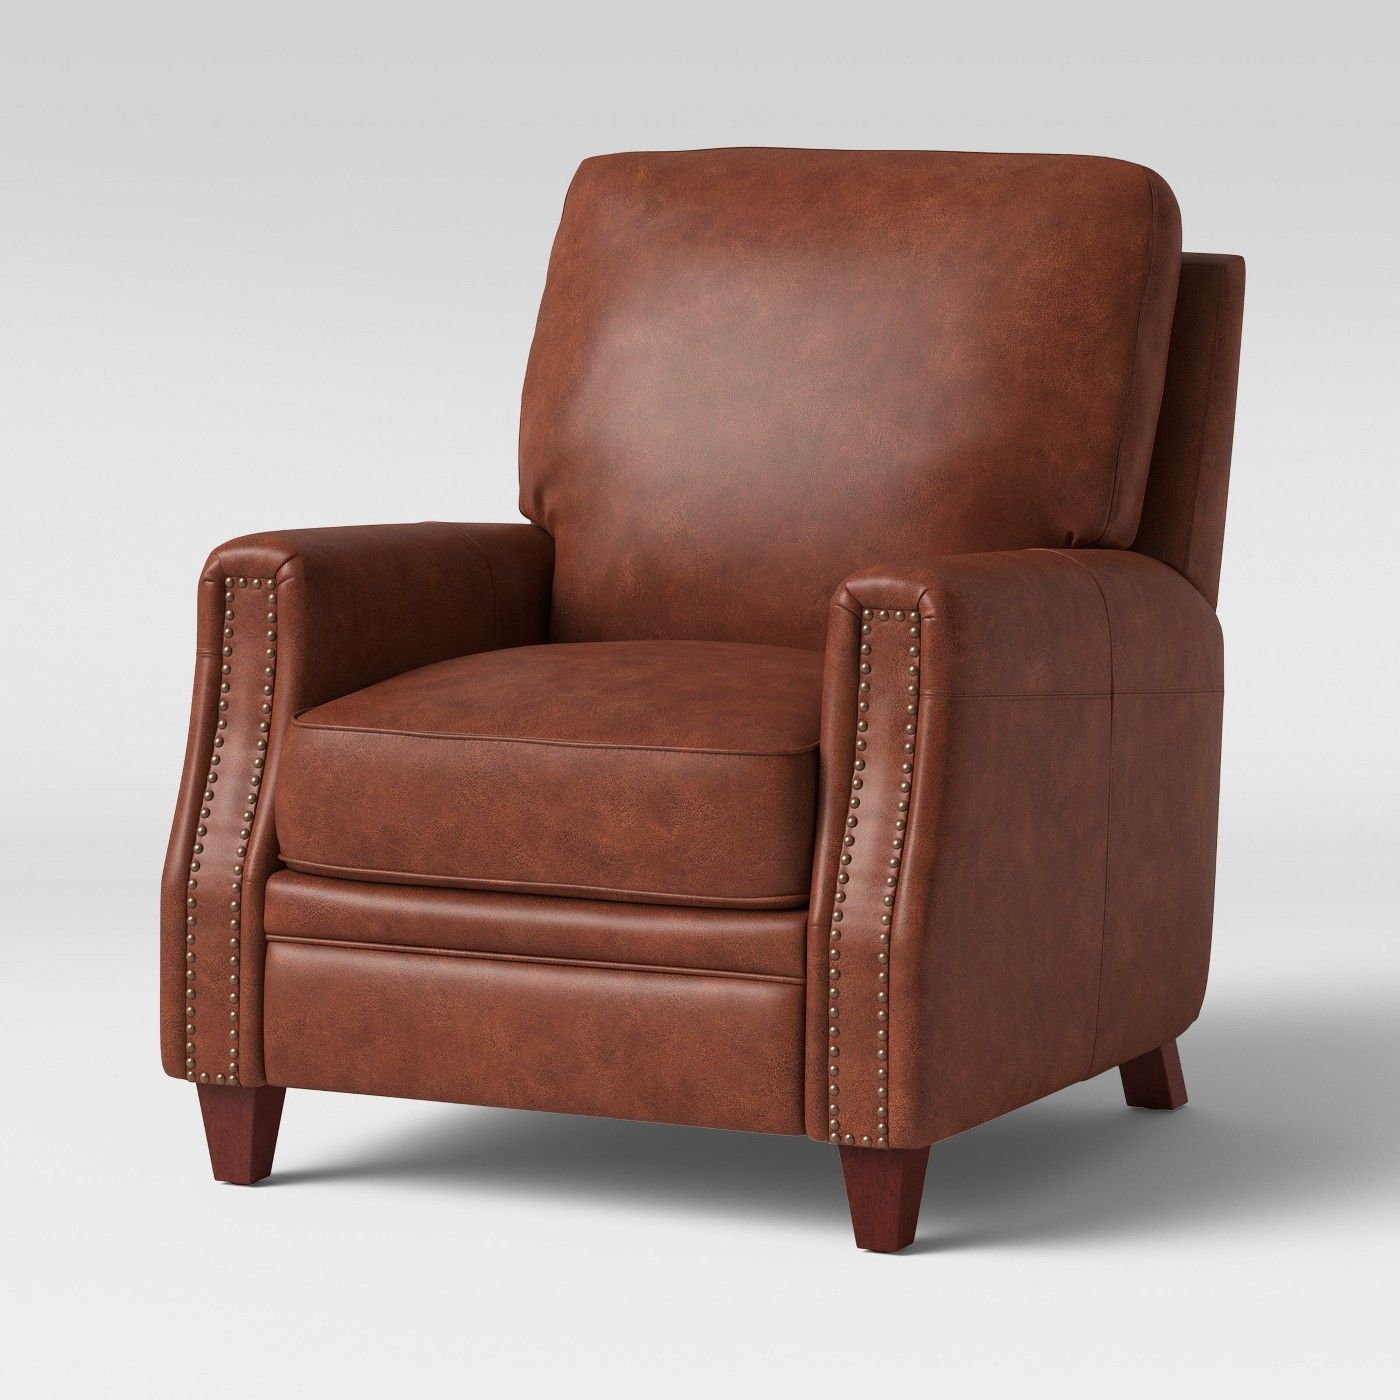 Best Bolton Pushback Recliner Threshold™ With Images 400 x 300